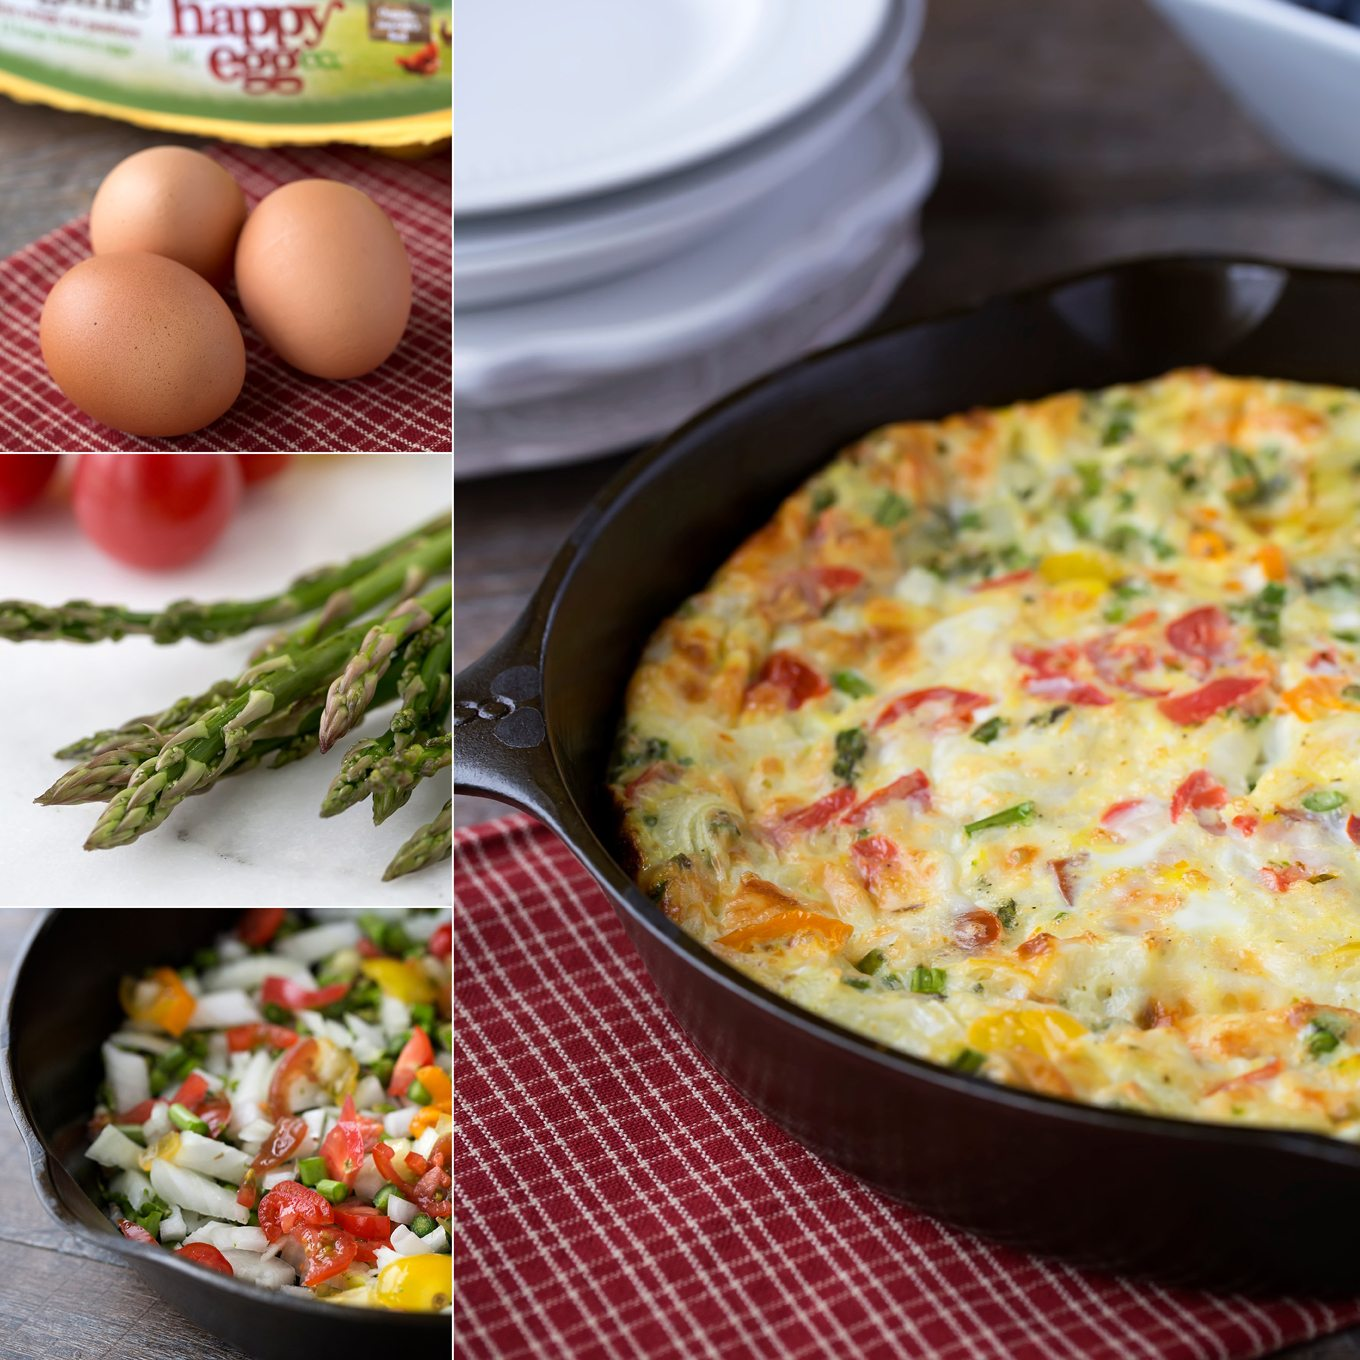 Start the day off right with Cheese and Veggie Egg Bake, a delicious, nourishing, and easy breakfast for busy on-the-go mornings.